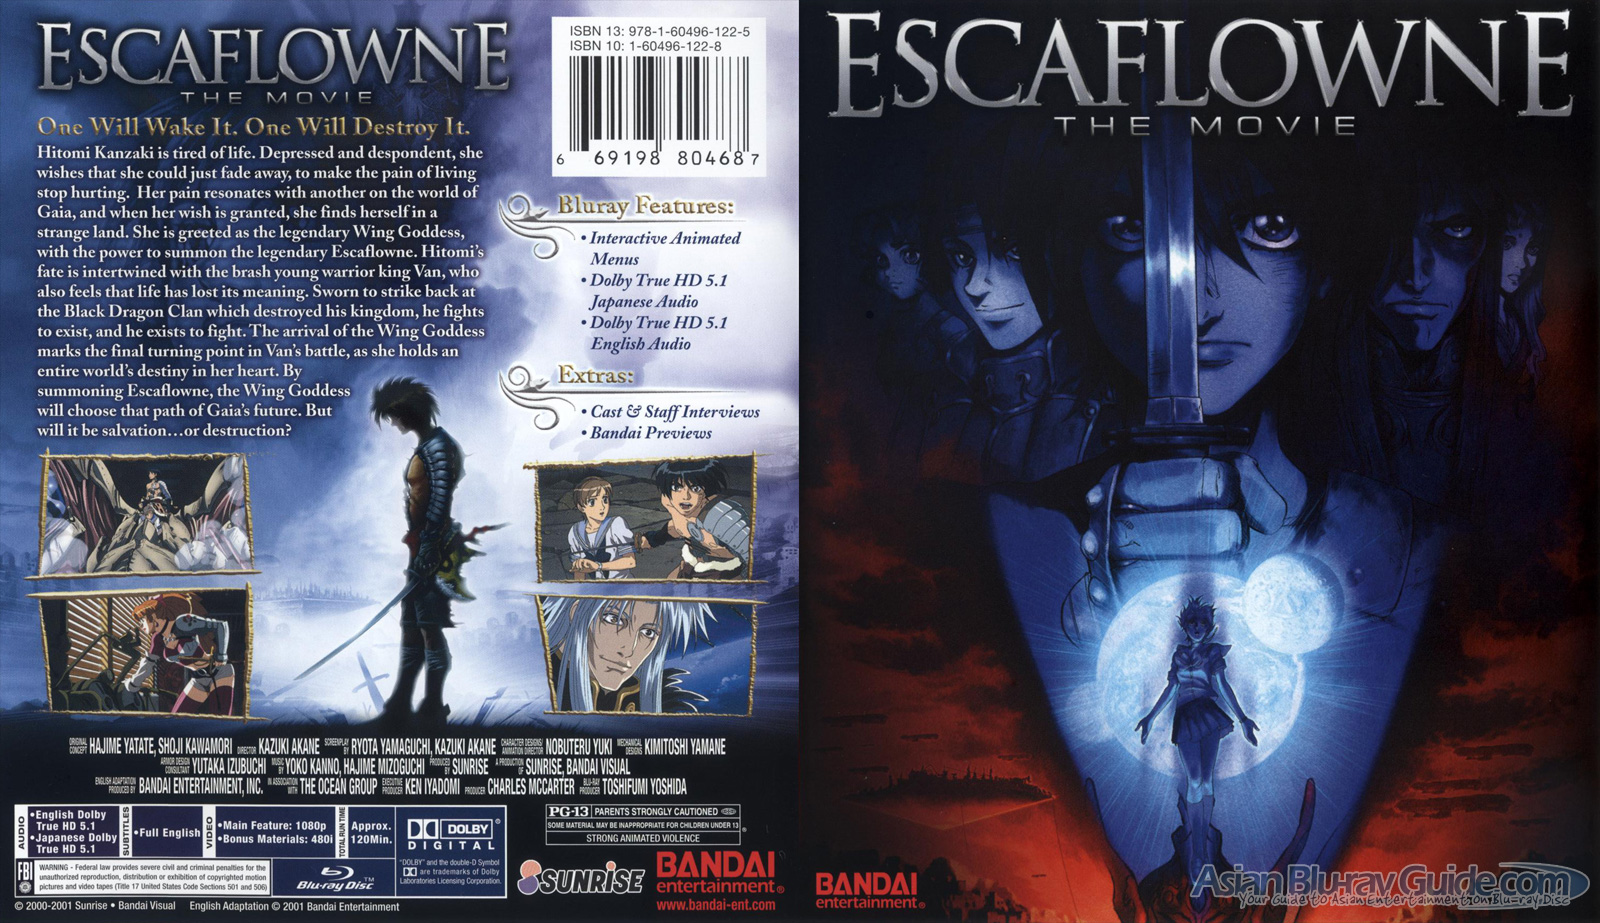 cover_escaflowne_movie_us.jpg